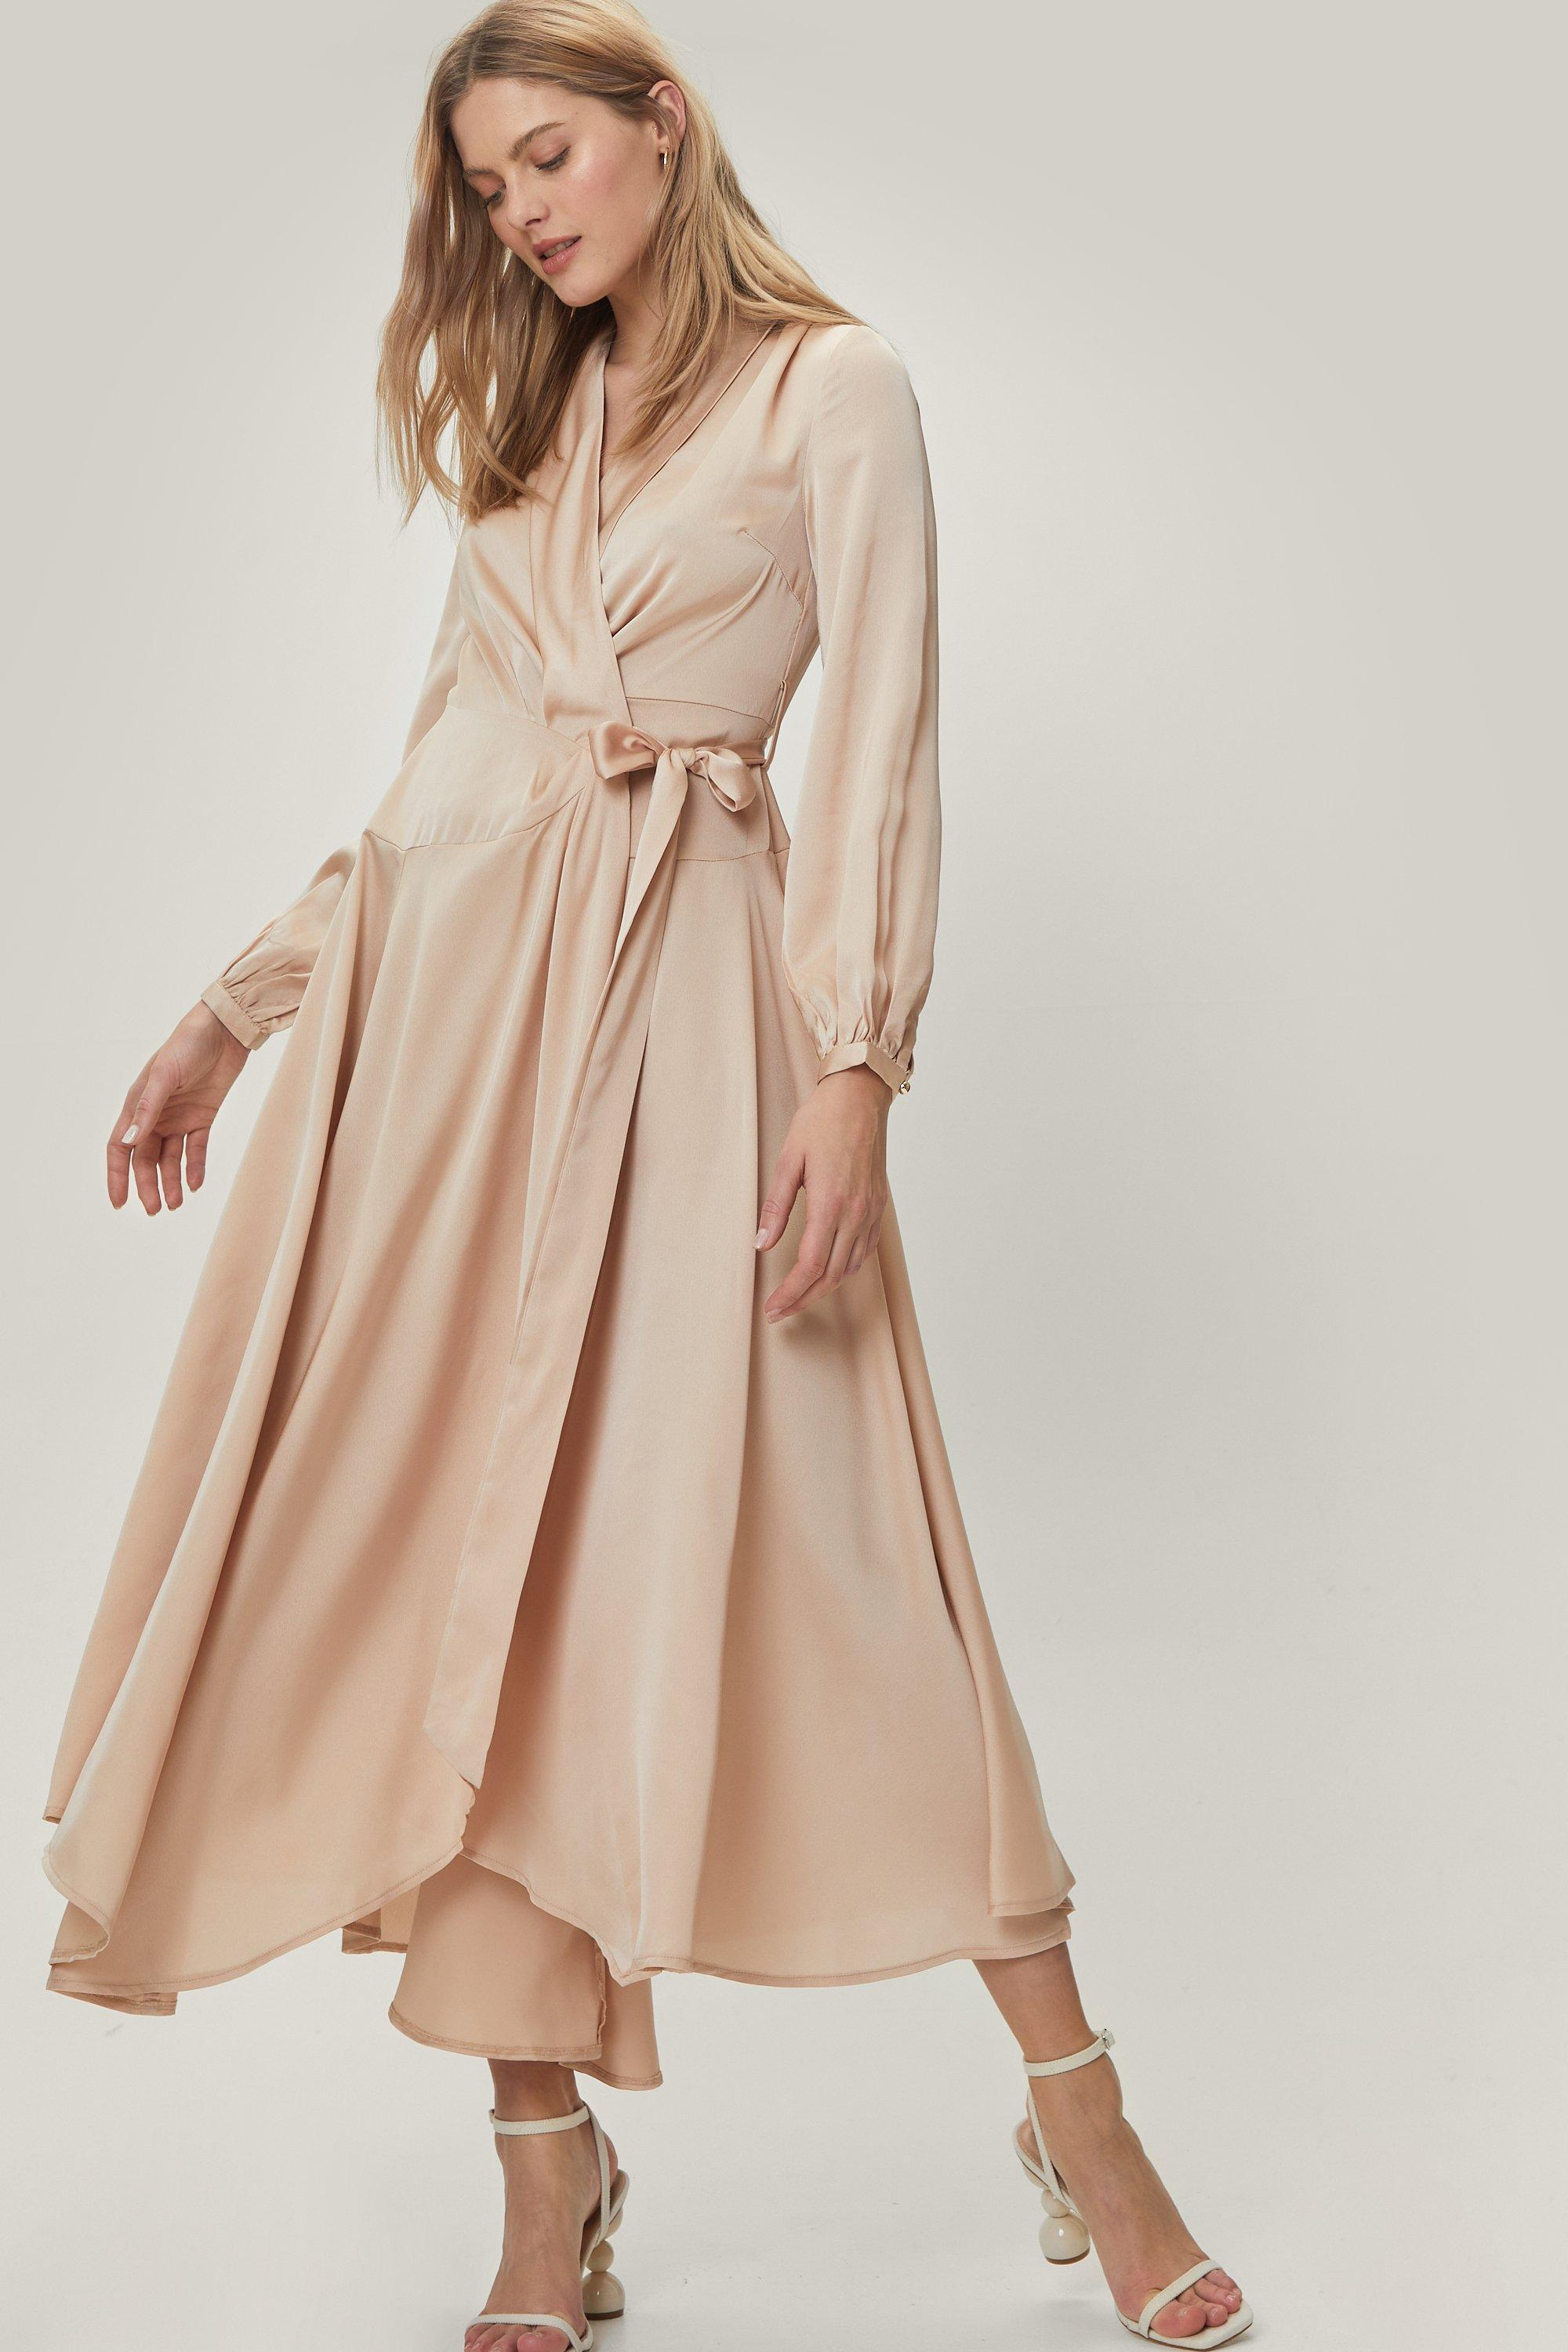 70s Prom, Formal, Evening, Party Dresses Womens Satin Long Sleeve Belted Maxi Wrap Dress - Champagne - 12 $37.60 AT vintagedancer.com